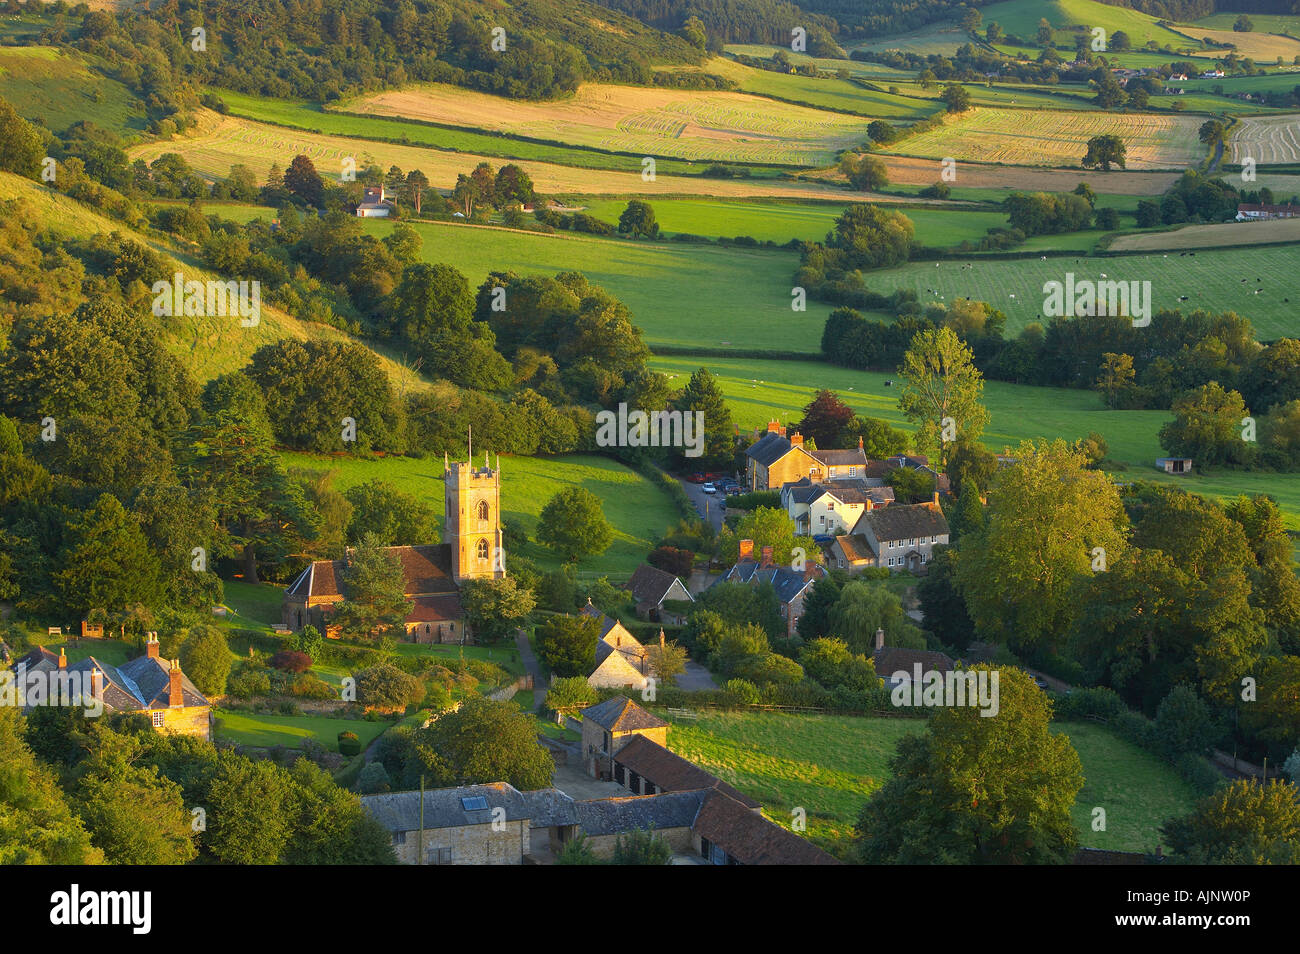 the rolling countryside of the Somerset/Dorset border with the village of Corton Denham, Somerset, England, UK. - Stock Image